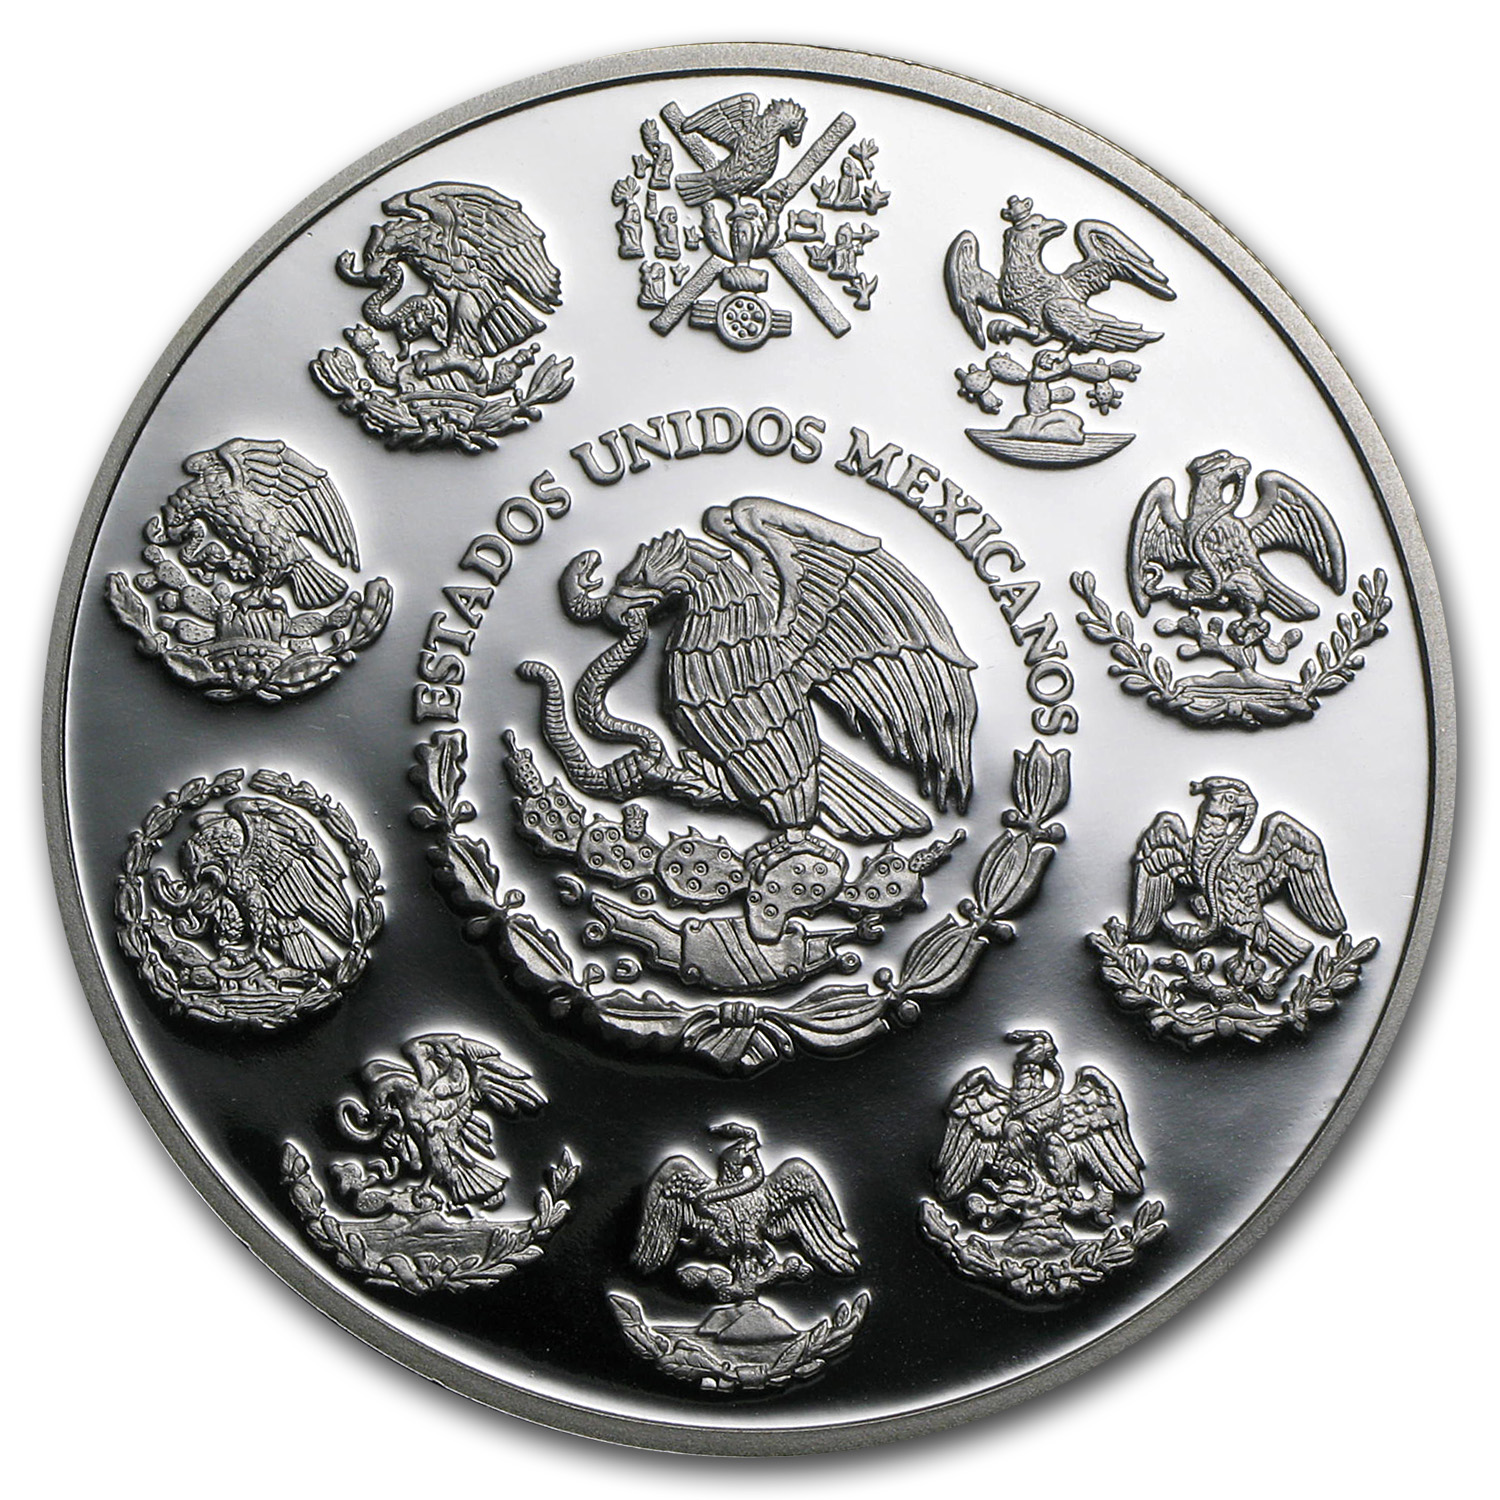 2013 Mexico 2 oz Silver Libertad Proof (In Capsule)